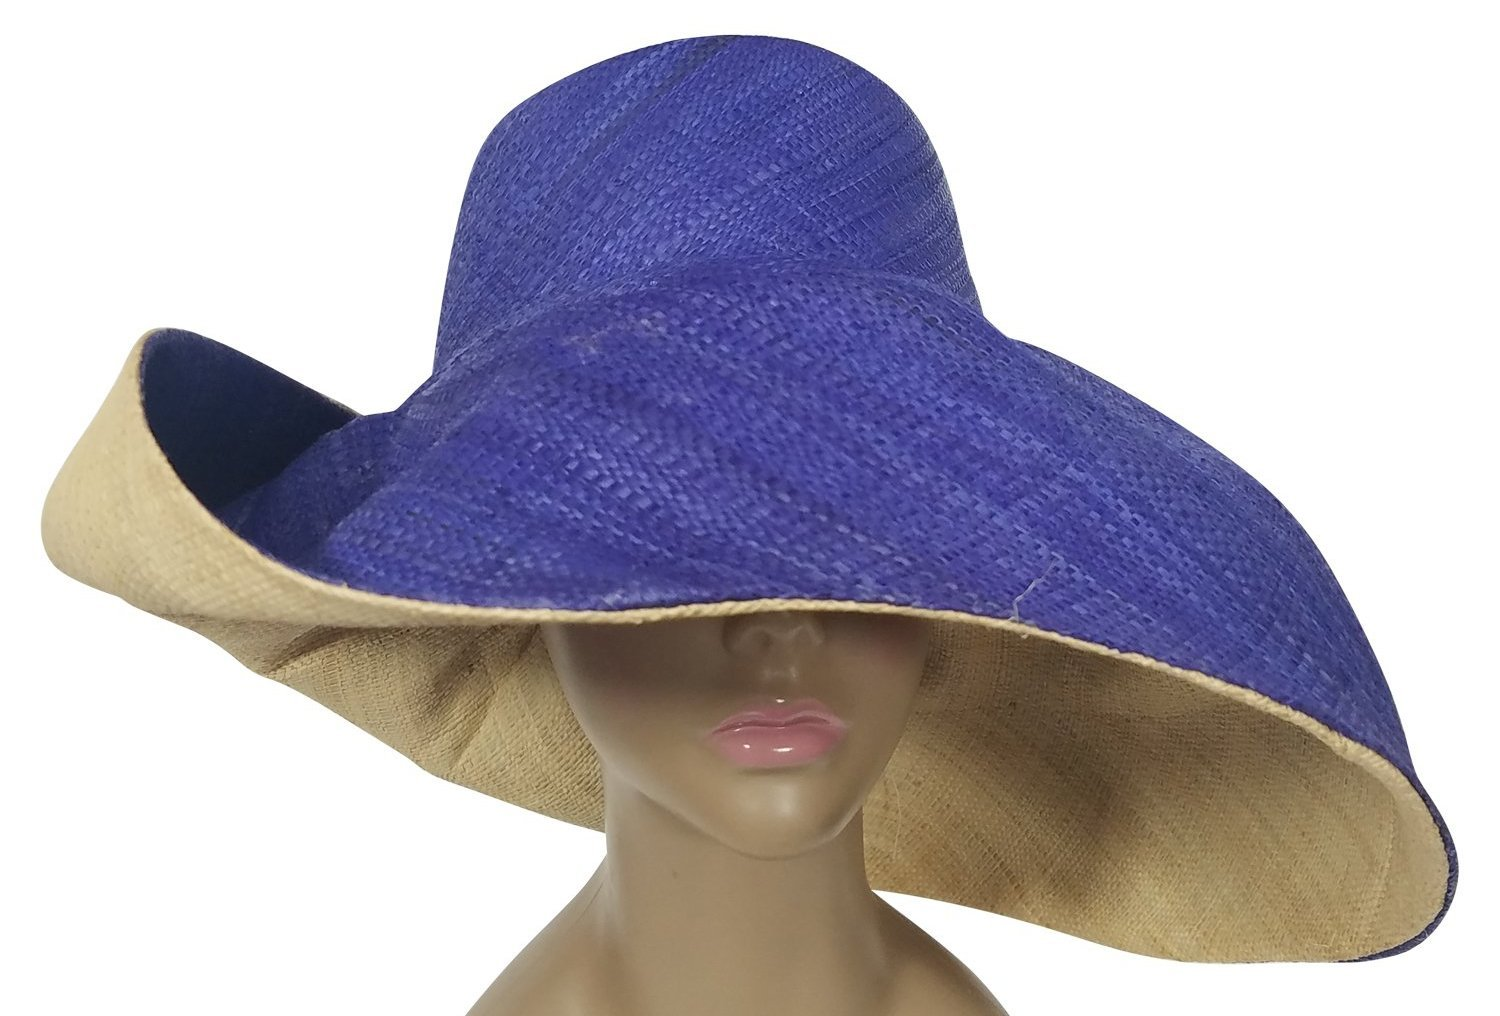 Dofi: Authentic African Hand Woven Blue and Natural Madagascar Big Brim Raffia Sun Hat